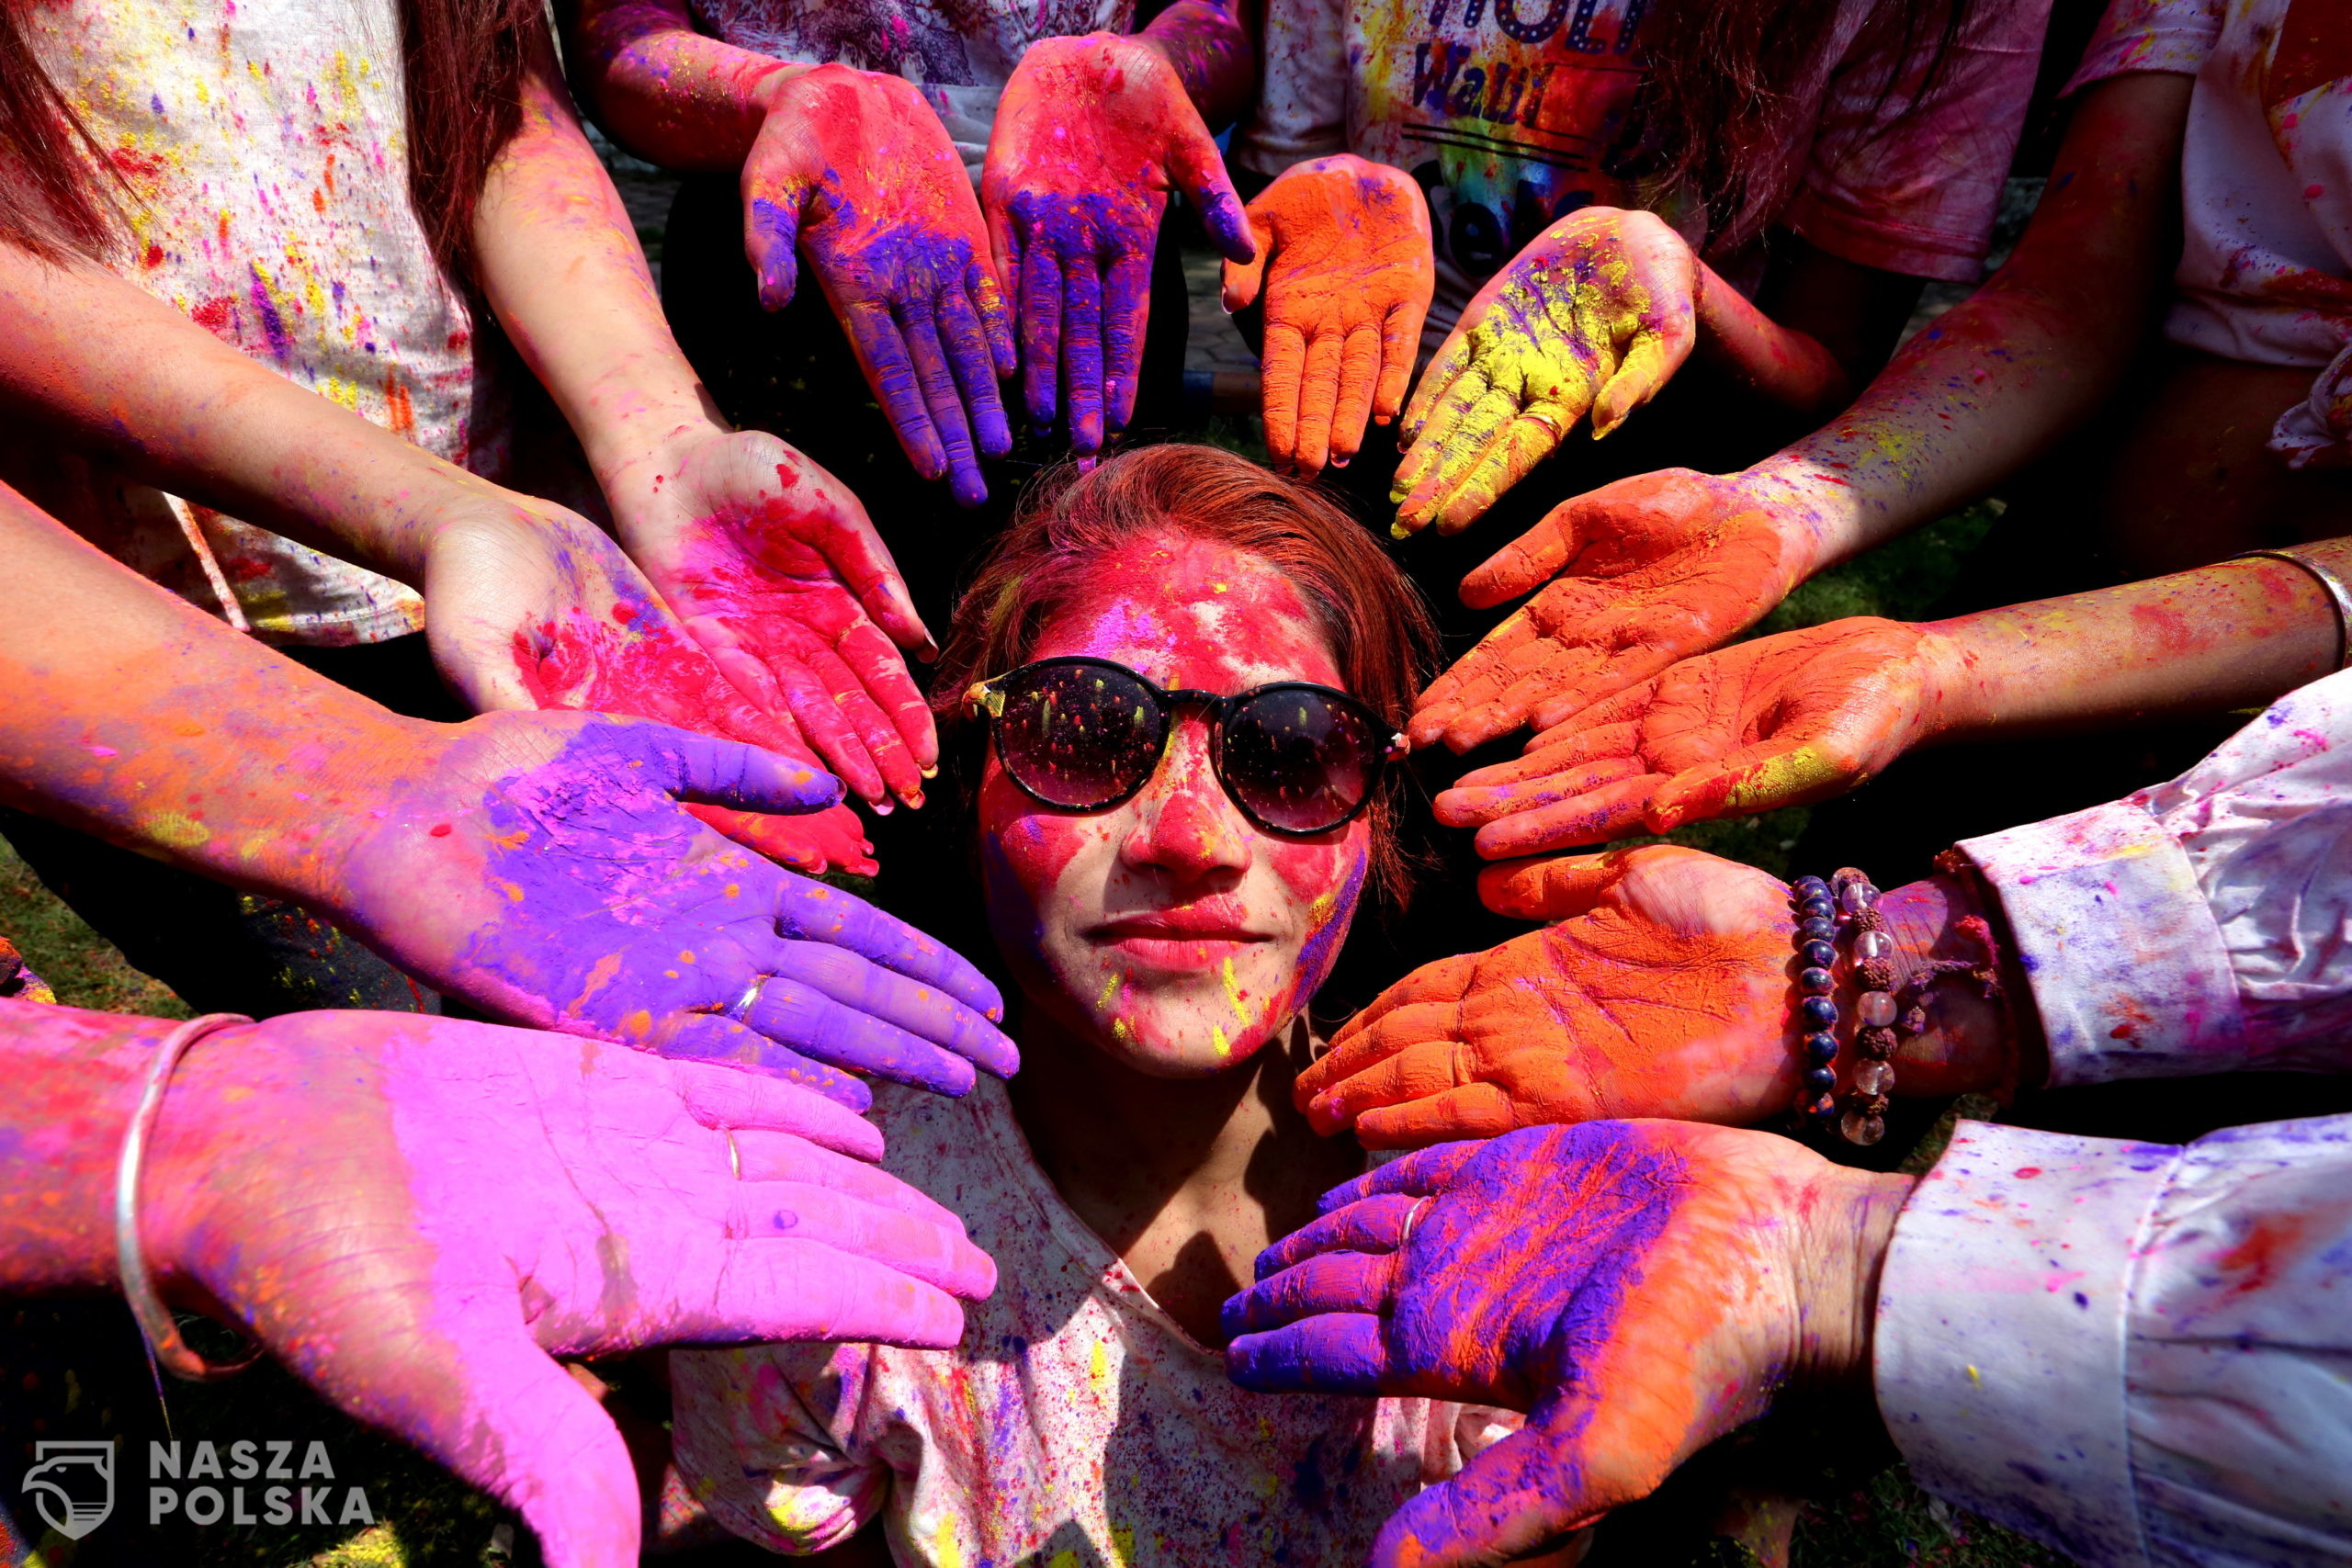 epa09093026   Indian college girls take part in the Holi festival celebrations in Bhopal, India, 24 March 2021. Holi is celebrated on the full moon day and marks the beginning of the spring season. Holi will be celebrated as the Hindu spring festival of colors across the country on 29 March.  EPA/SANJEEV GUPTA  Dostawca: PAP/EPA.